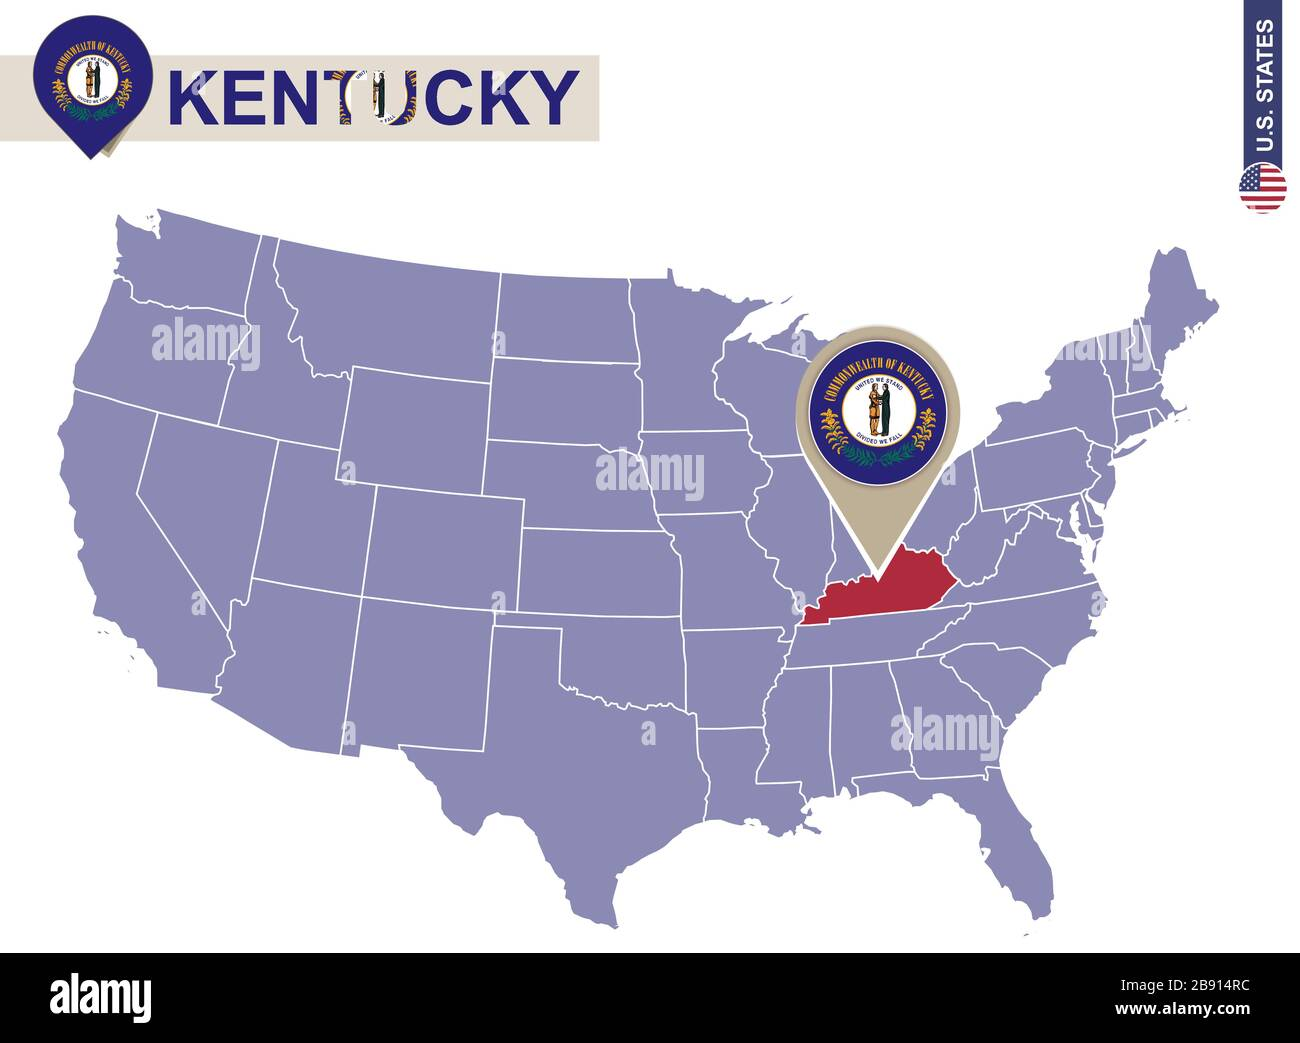 Go back to see more maps of kentucky  u.s. Kentucky State On Usa Map Kentucky Flag And Map Us States Stock Vector Image Art Alamy